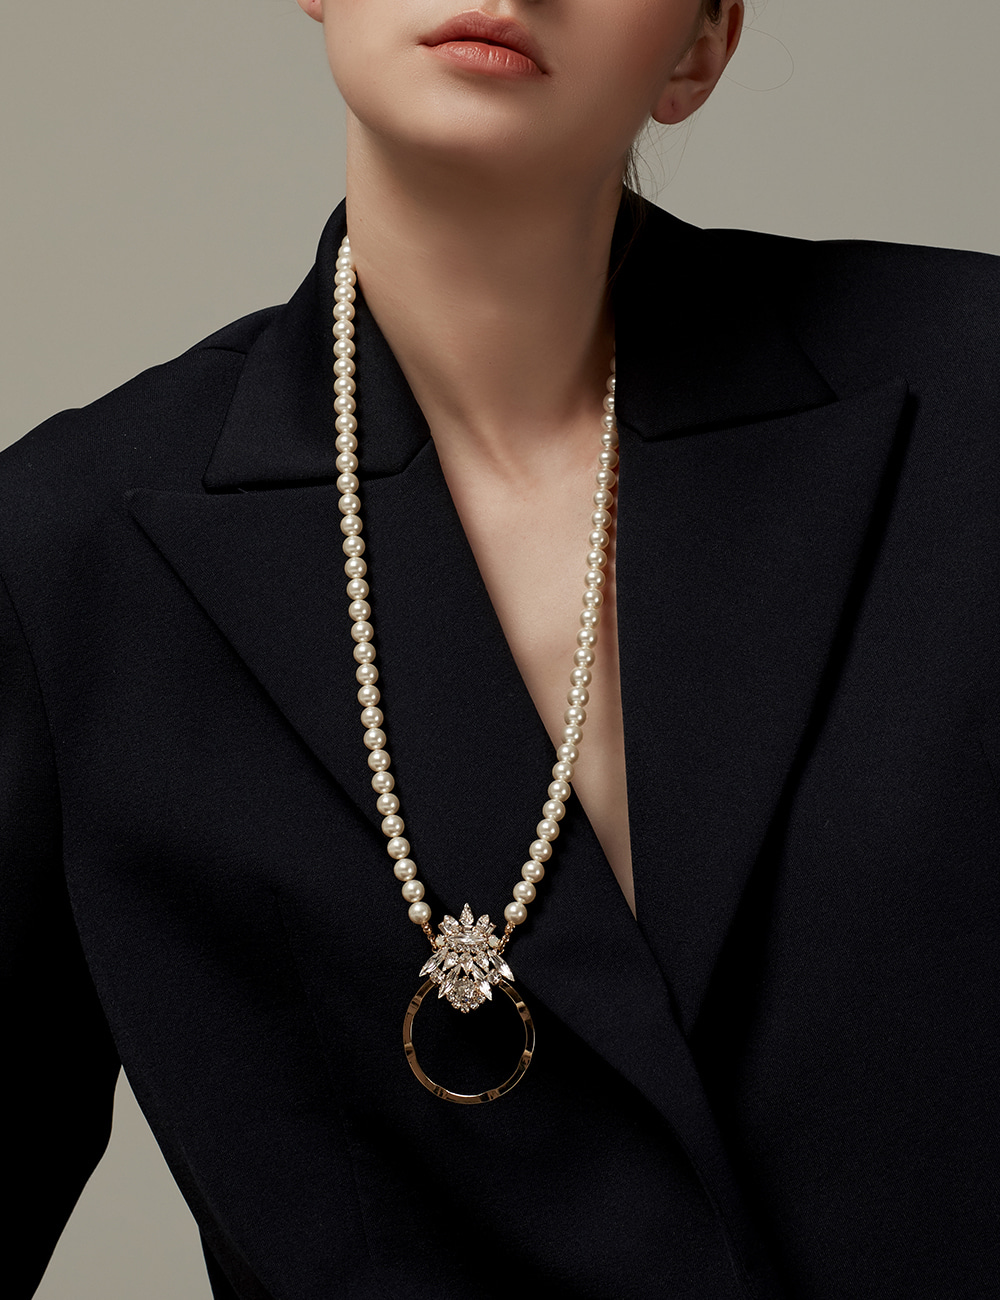 [Showpiece] Harp ring Necklace